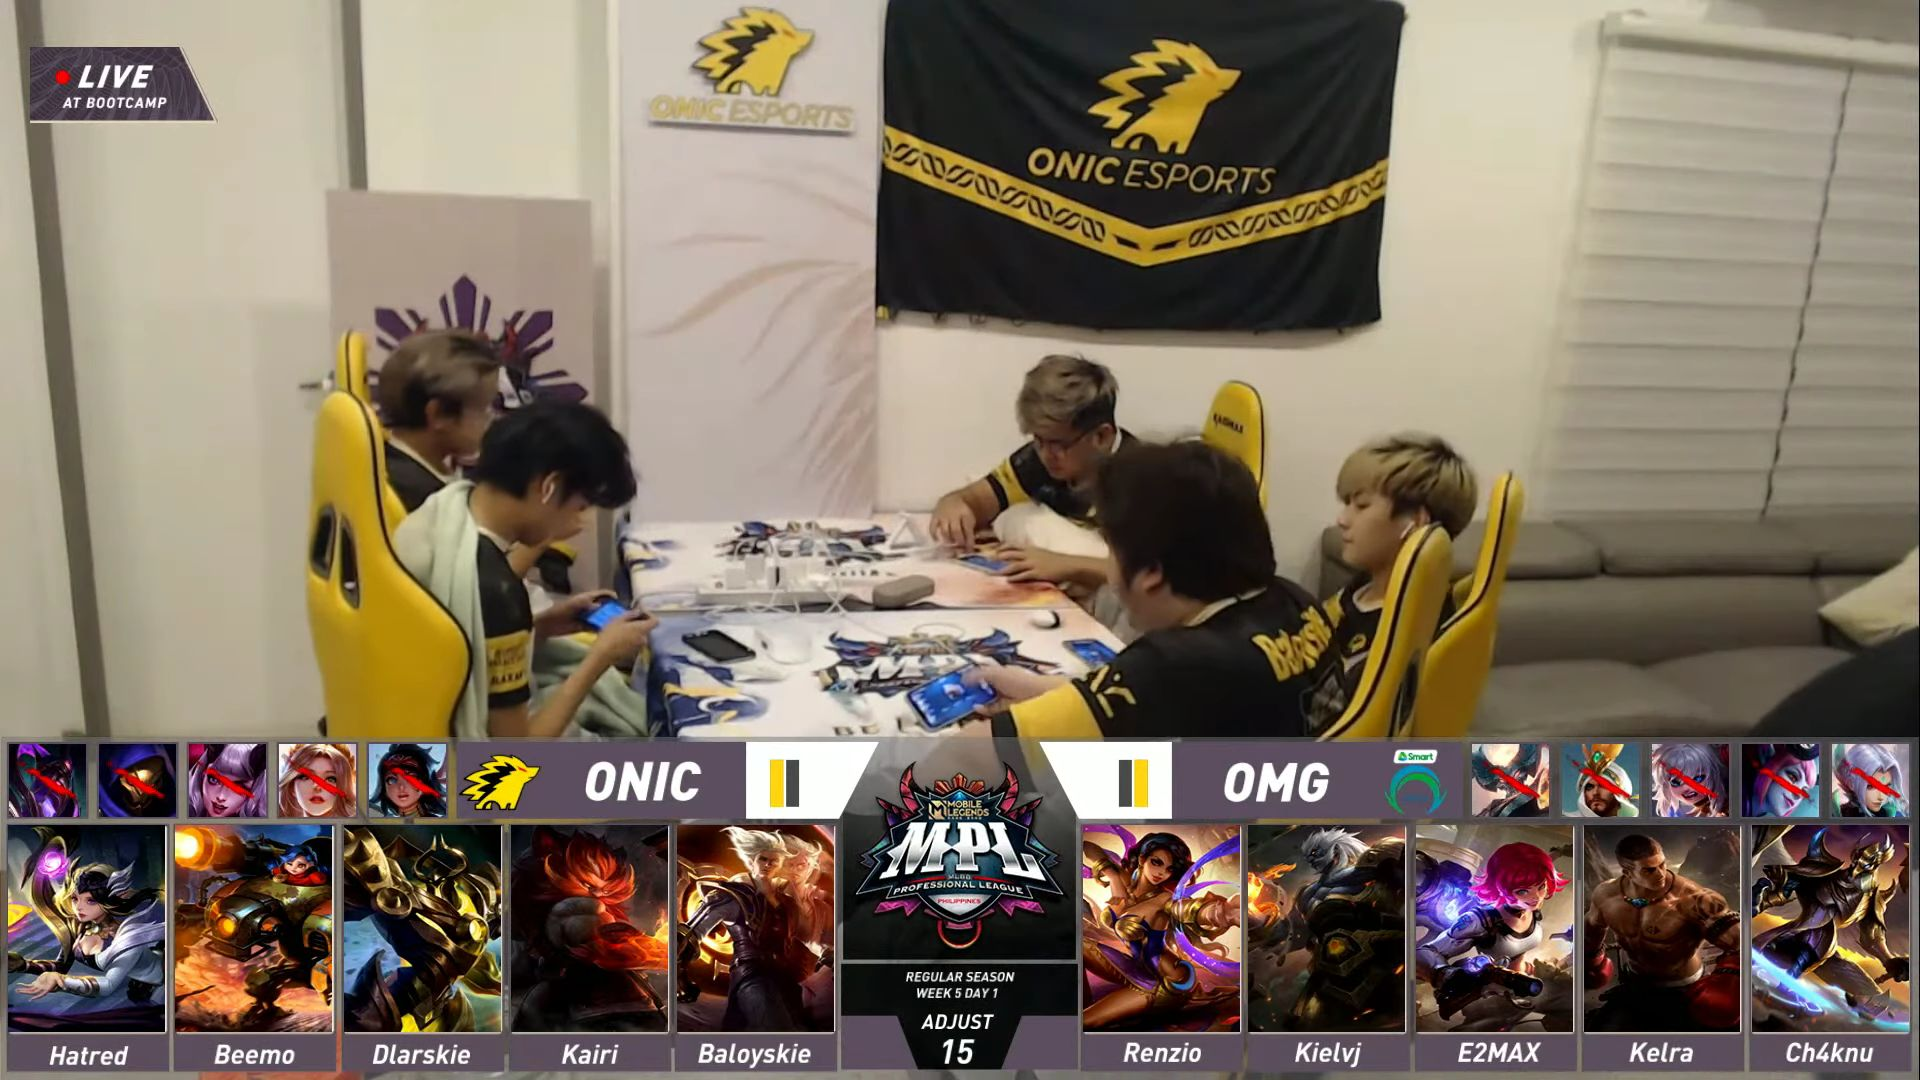 MPL-PH-8-ONIC-def-Omega-redraft SMART Omega rues Moonton's decision to do redraft during ONIC clash ESports Mobile Legends MPL-PH News  - philippine sports news